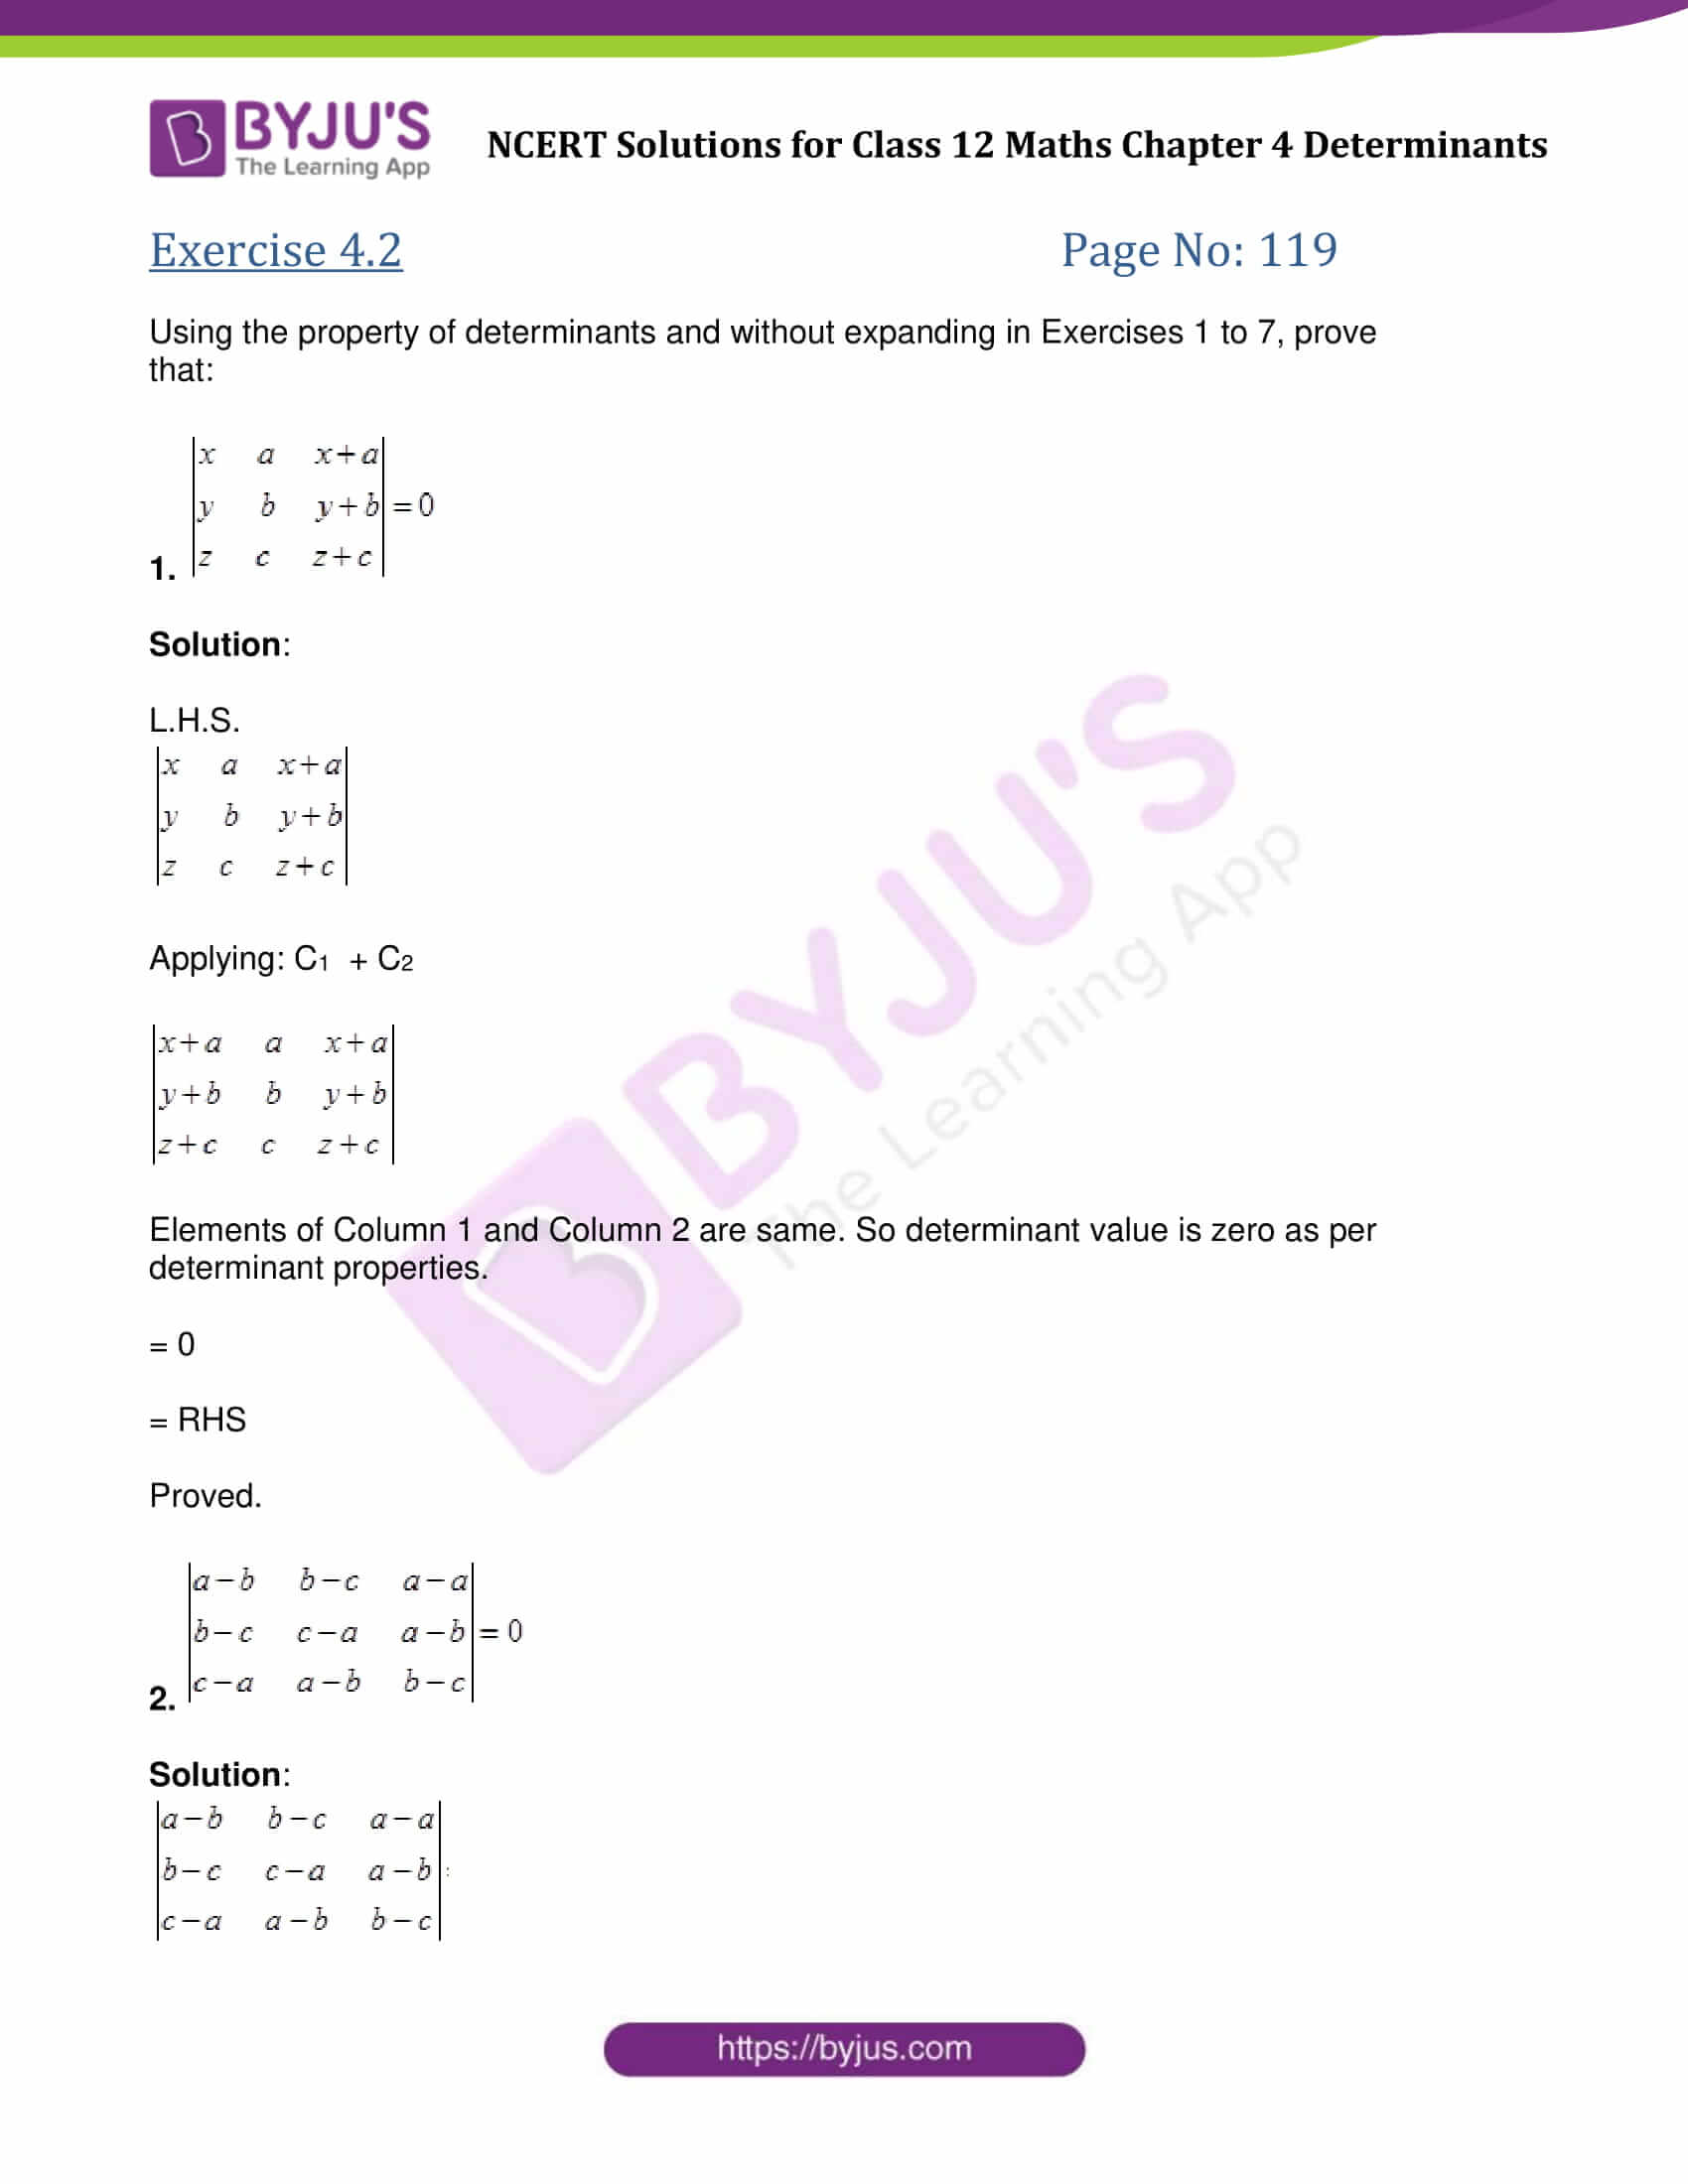 NCERT Solutions for Class 12 Maths Exercise 4 2 Chapter 4